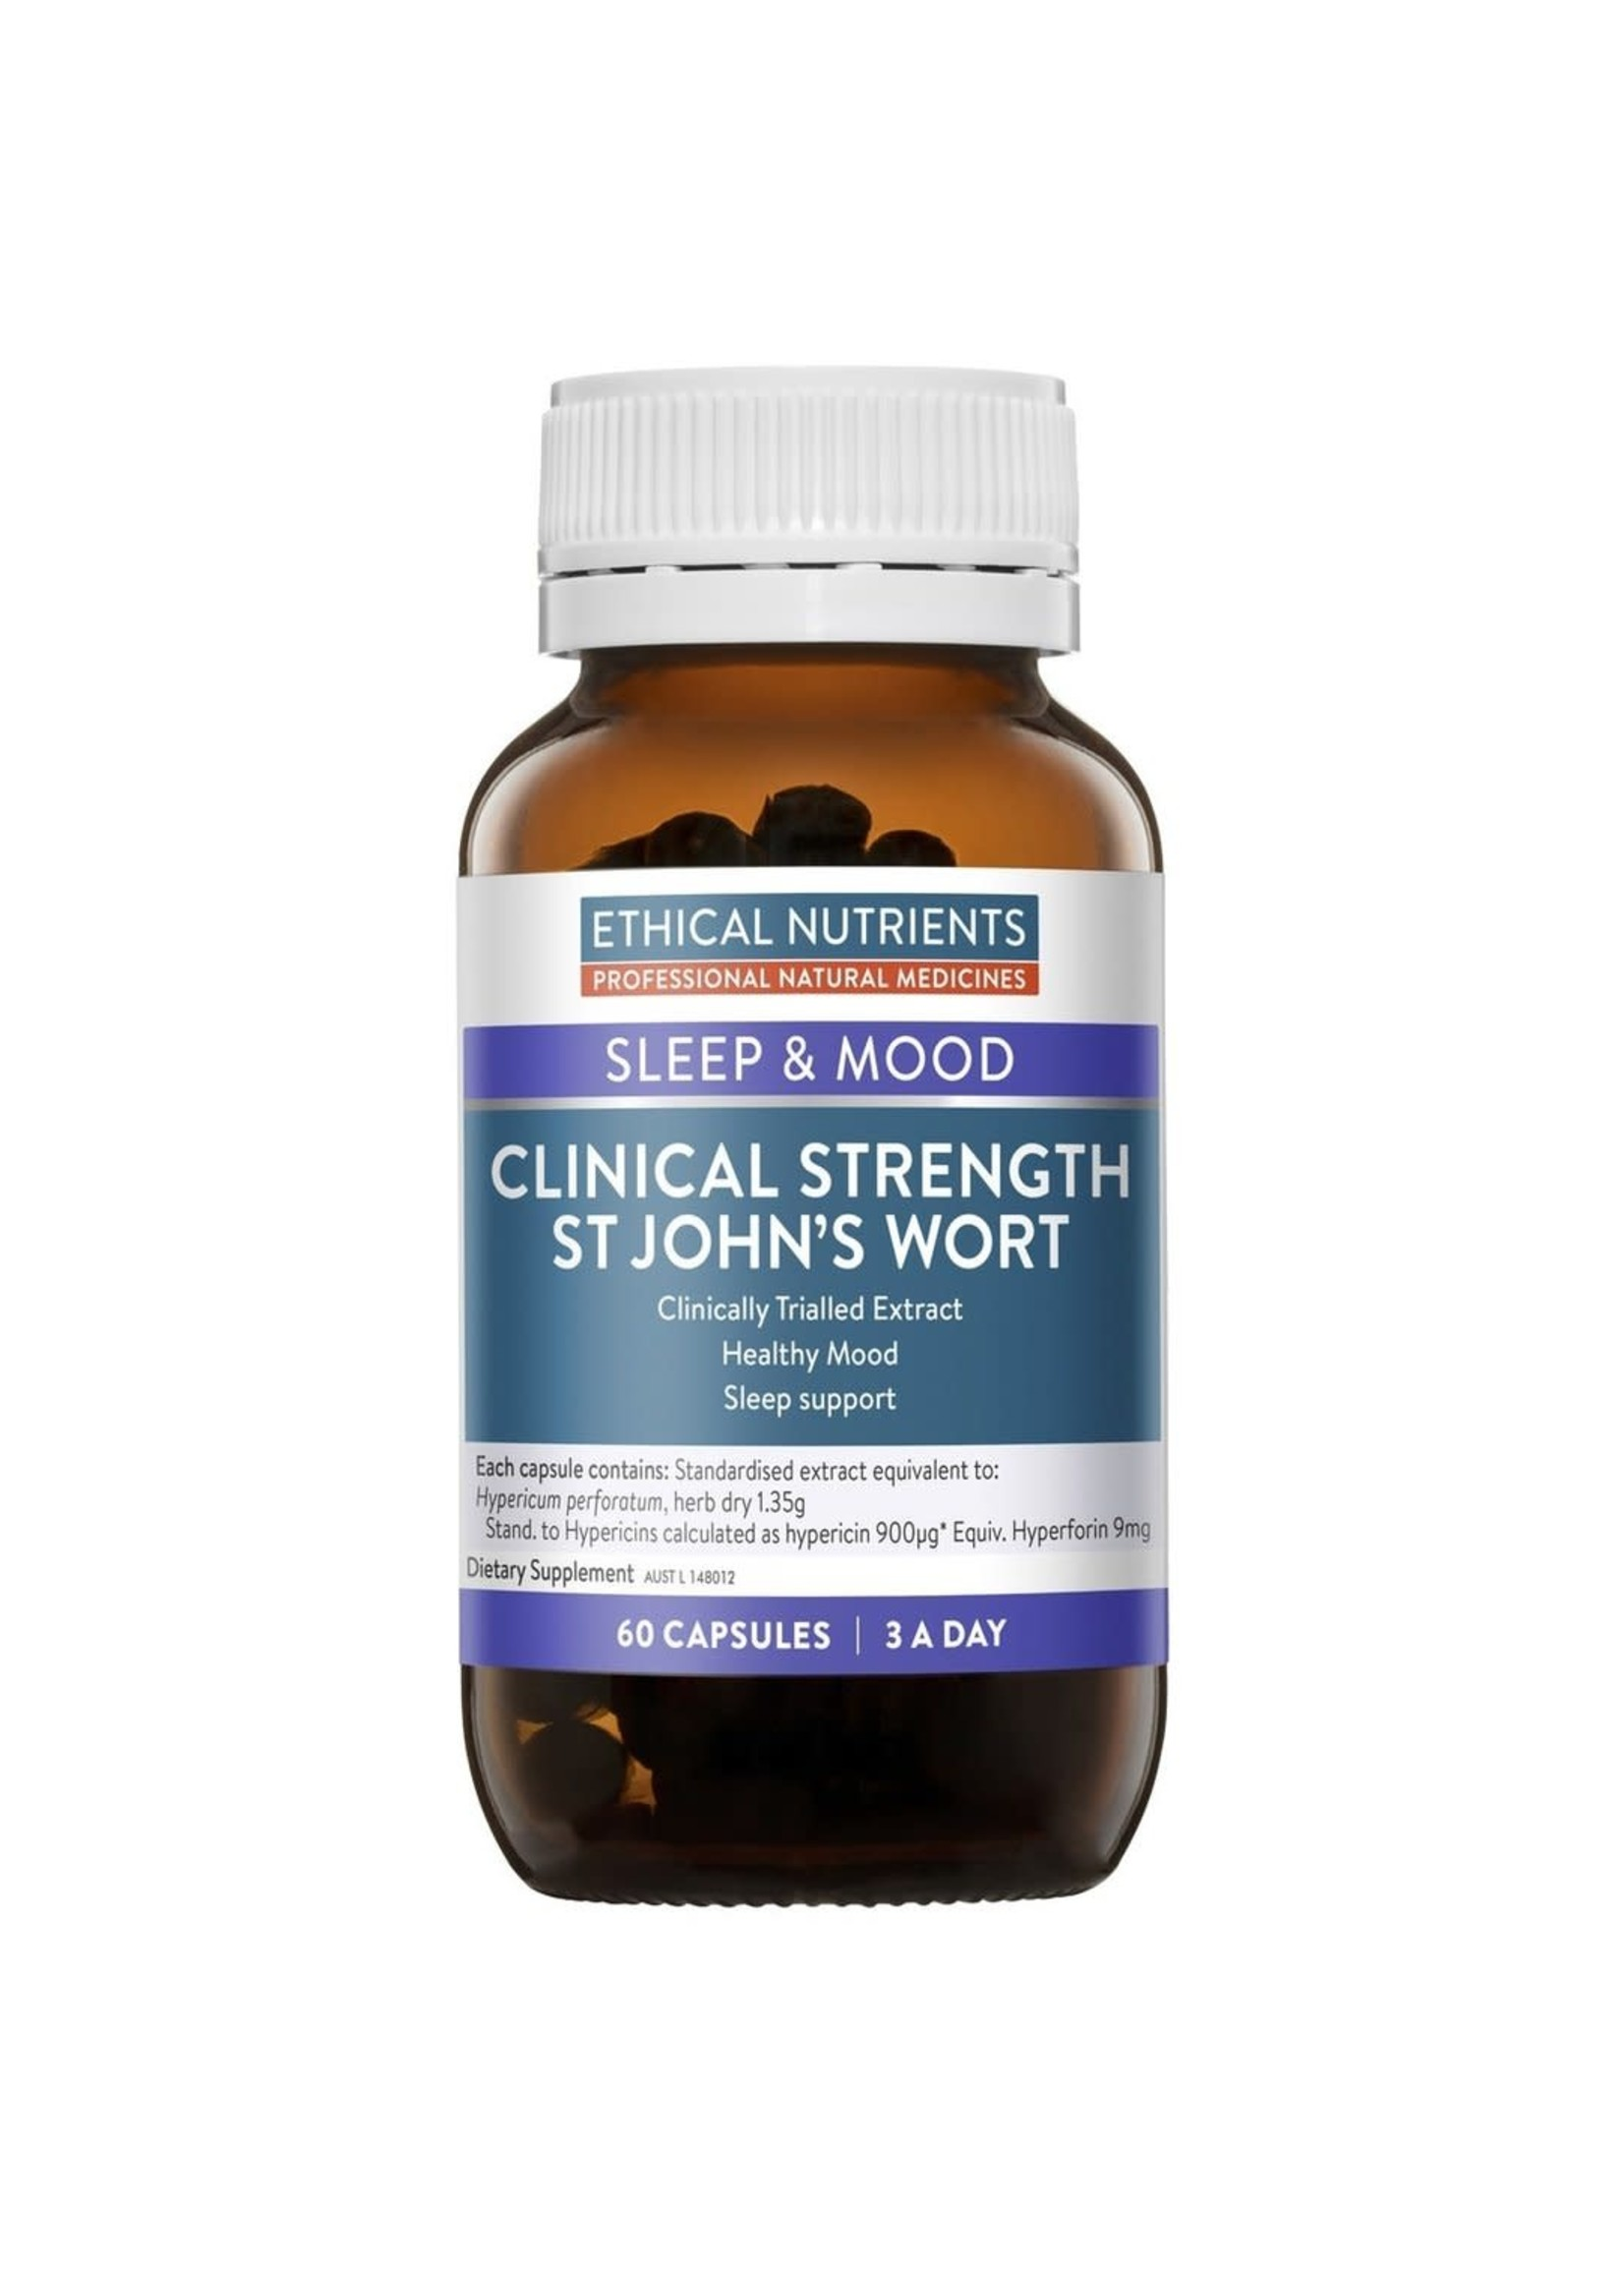 ETHICAL NUTRIENTS Ethical Nutrients Clinical Strength St John's Wort 60 caps